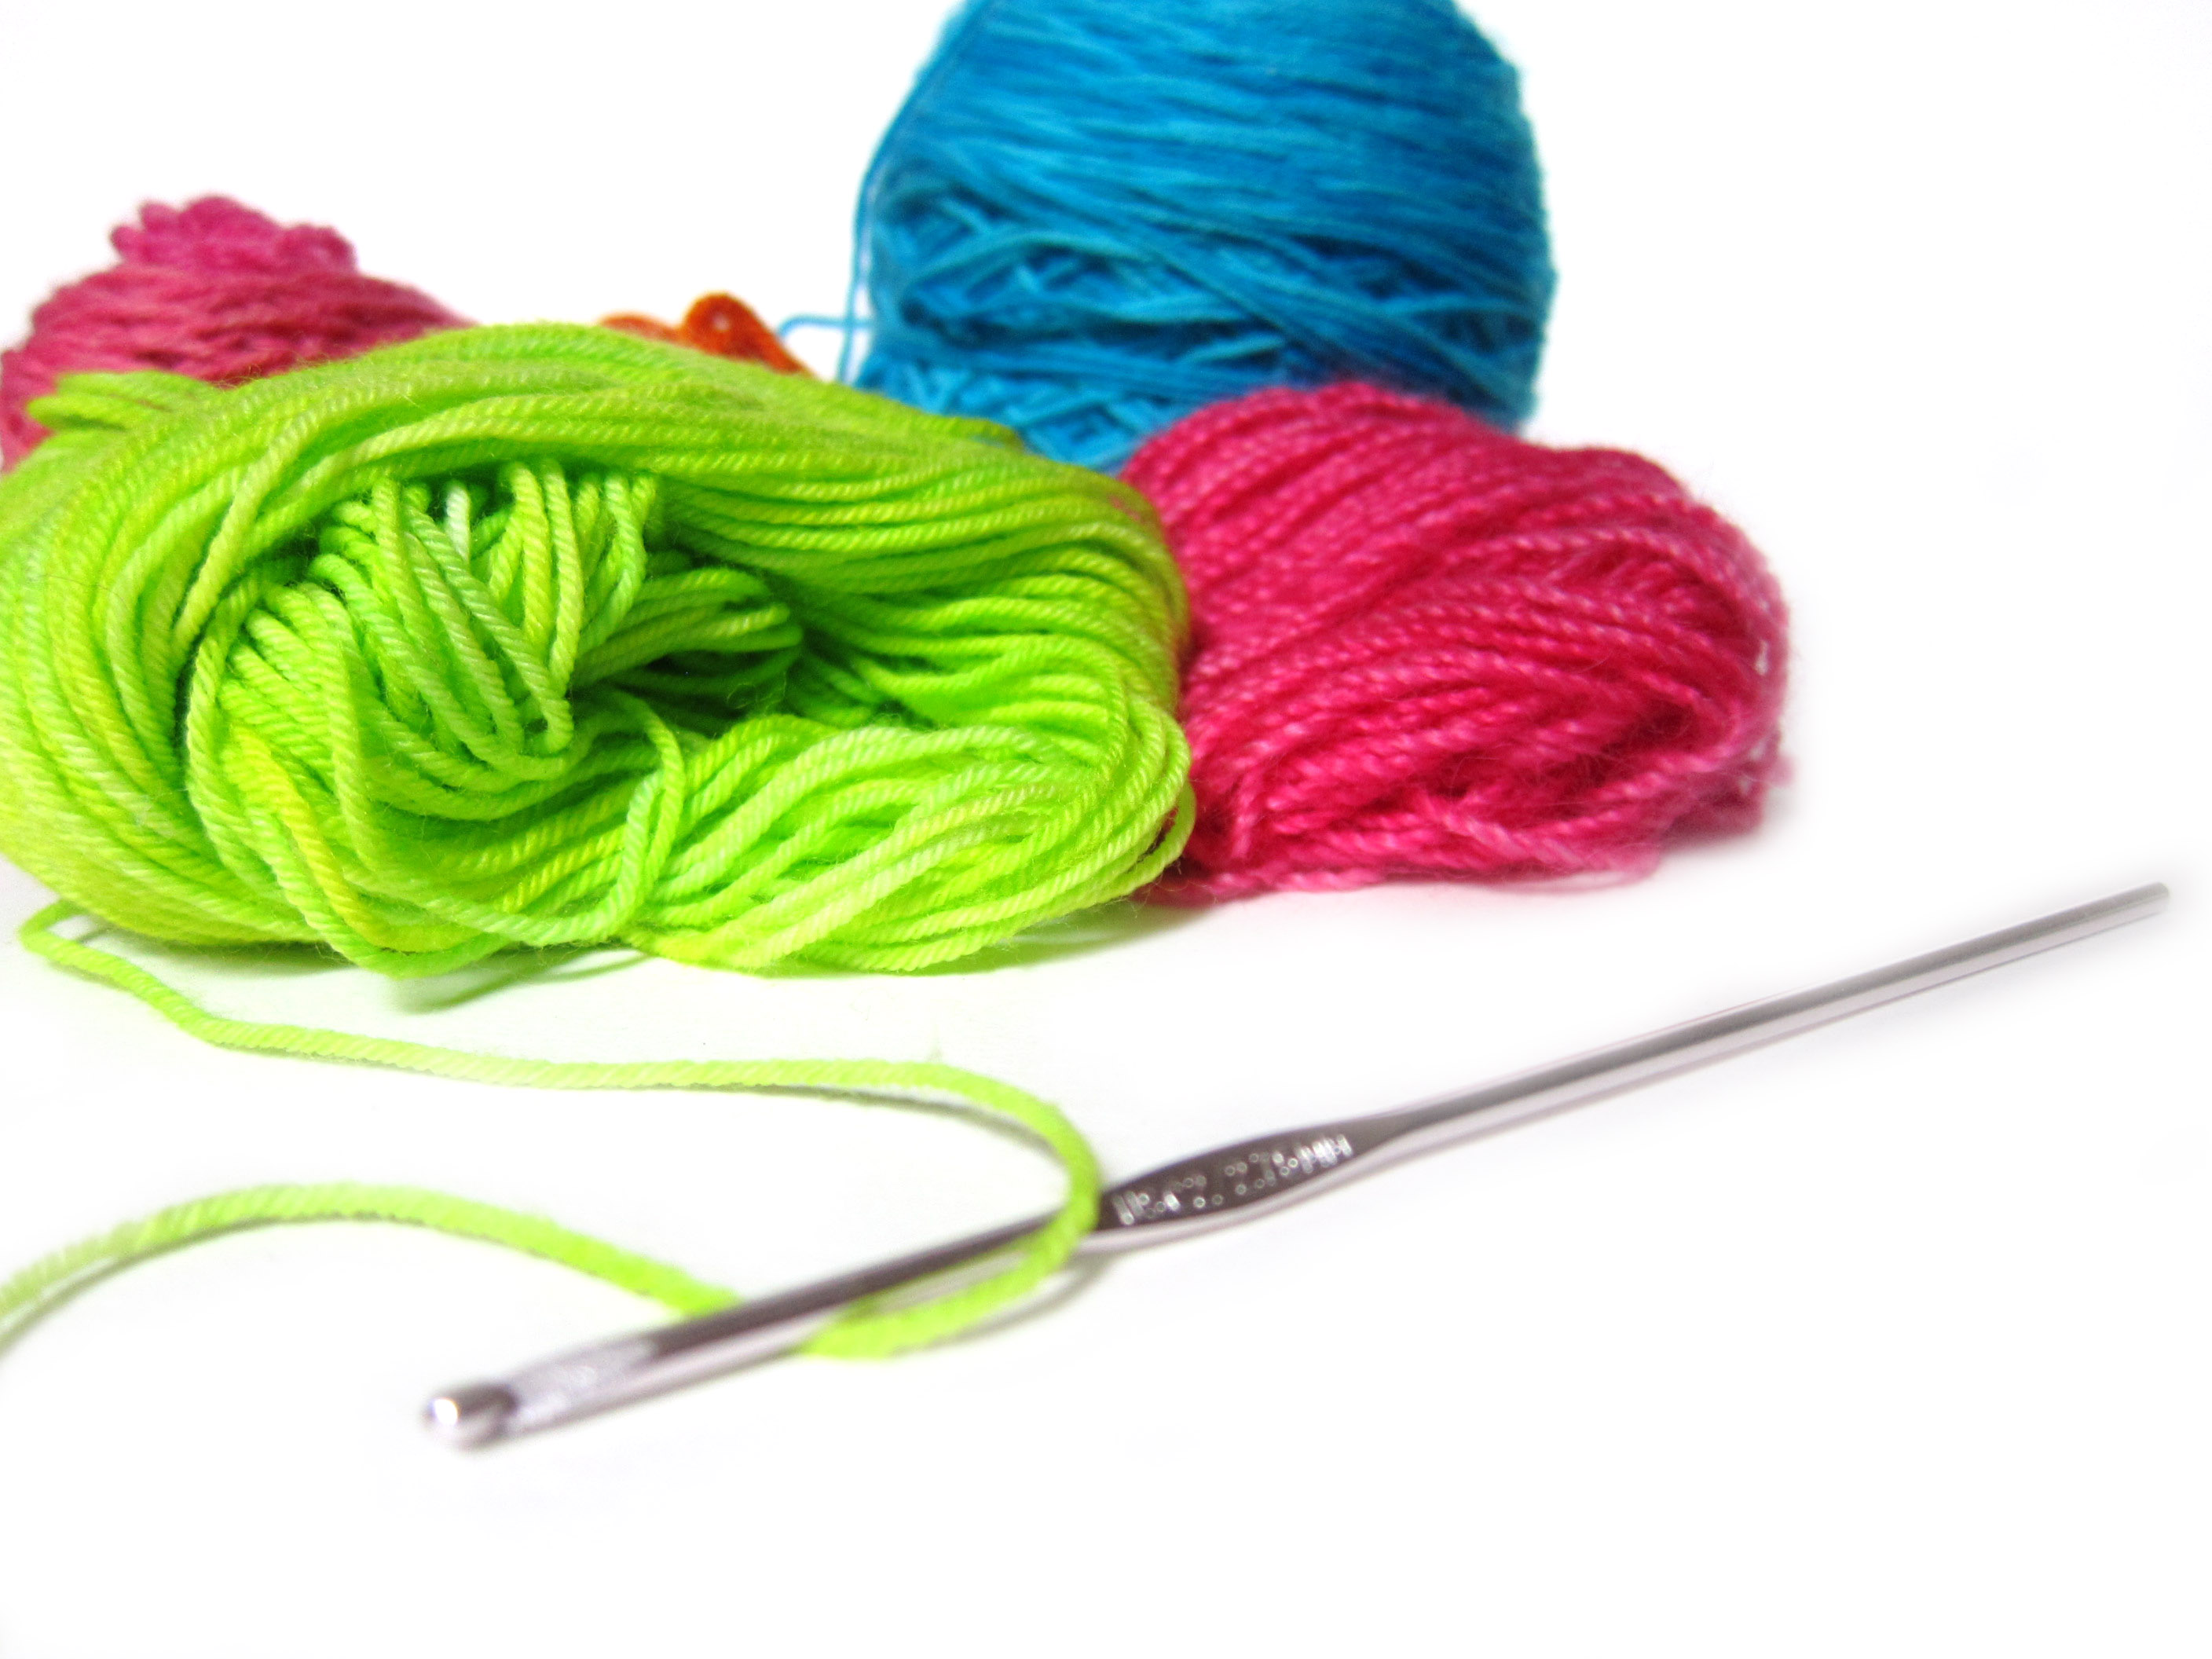 Crocheting Yarn : Yarn And Crochet Needles crochet hook - and yarn clipart - clipart kid